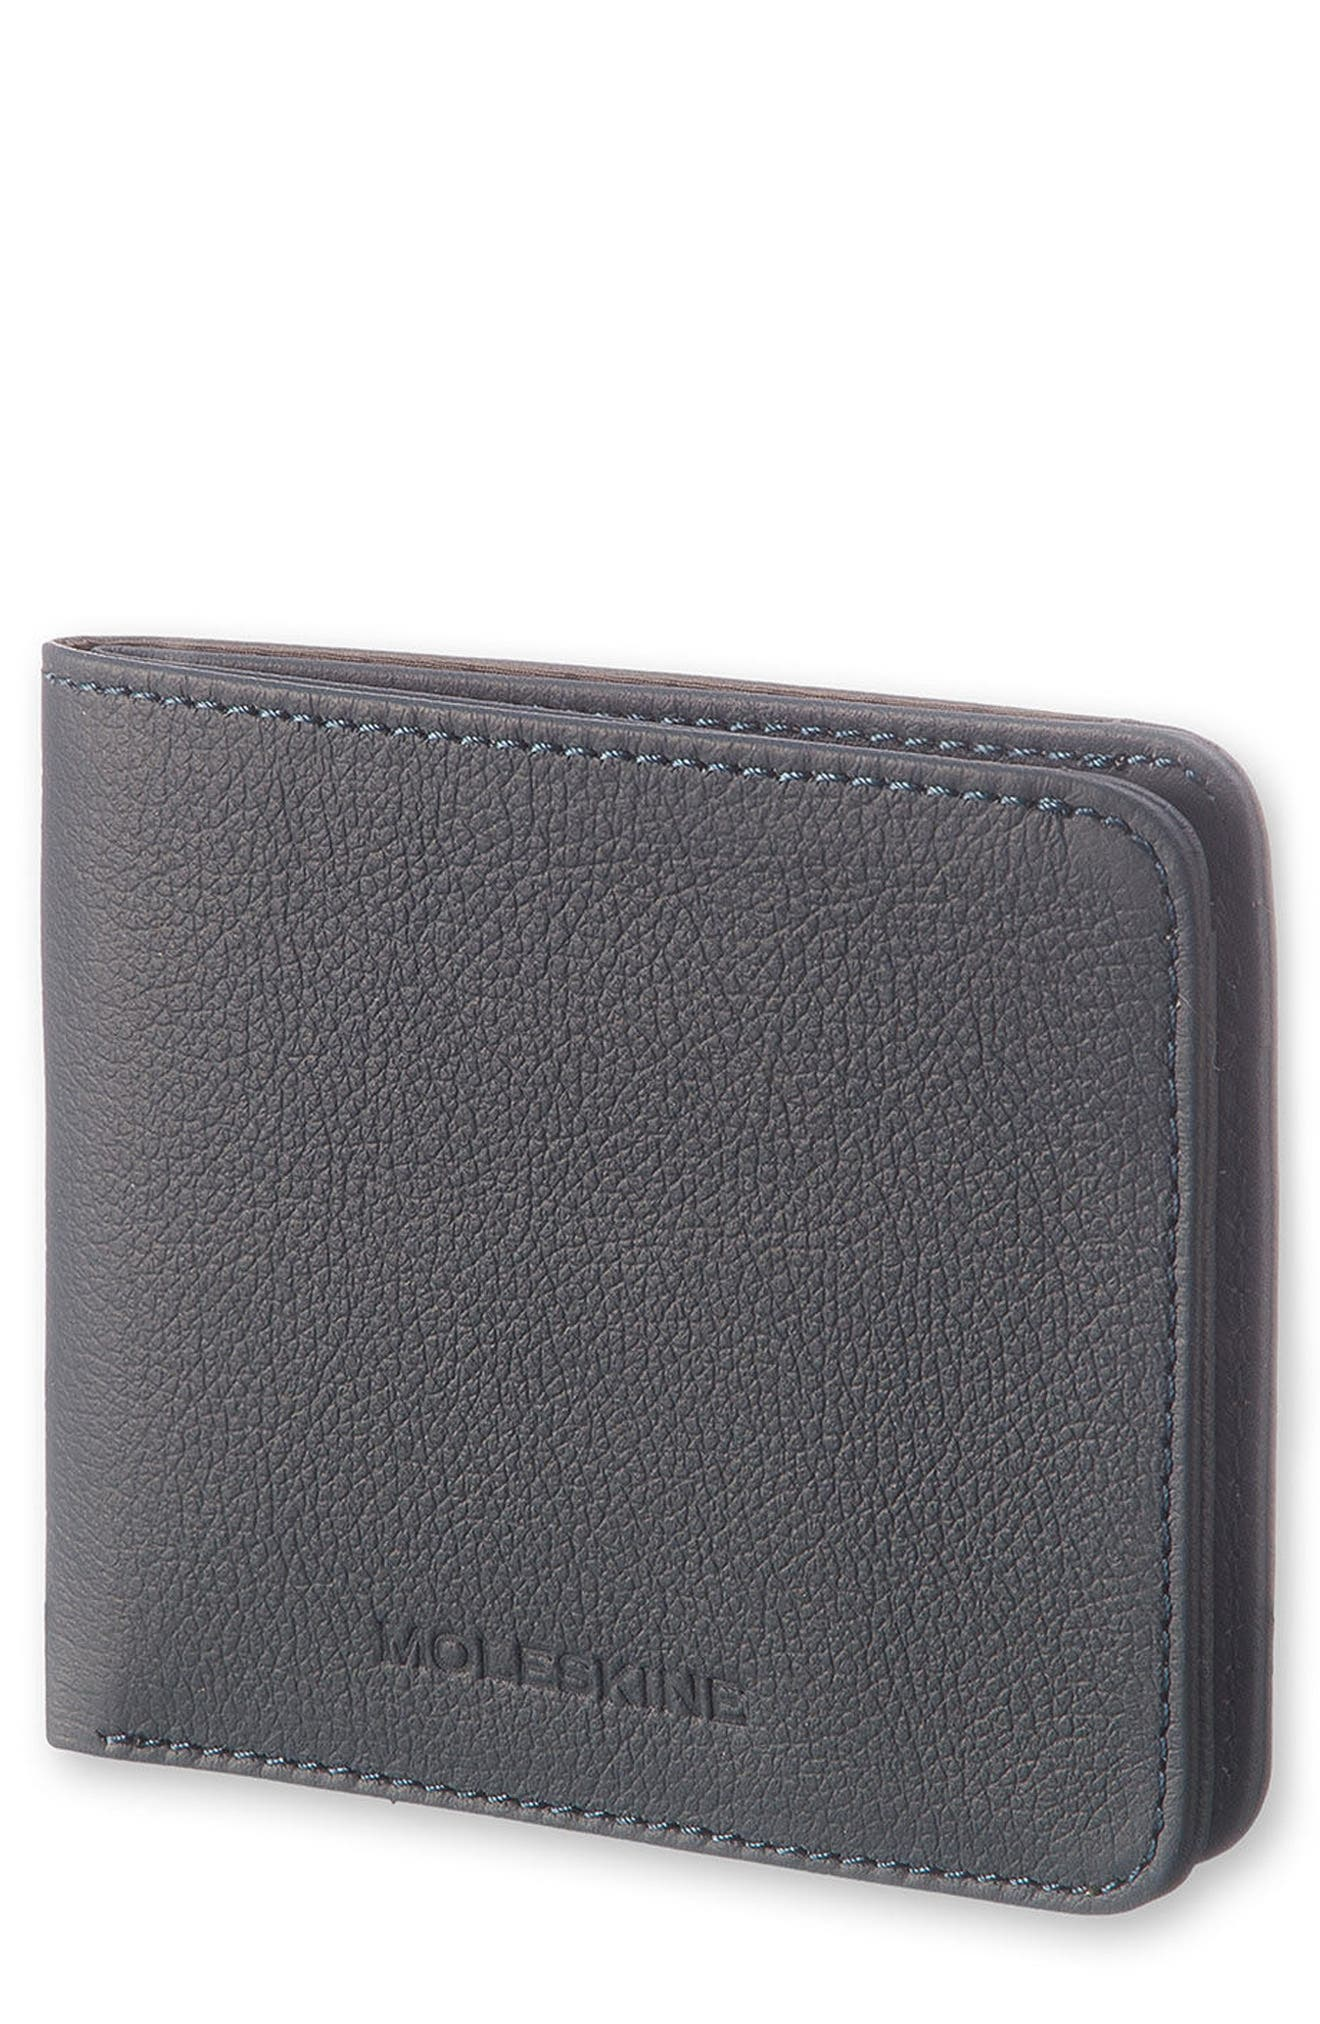 Main Image - Moleskine Lineage Leather Wallet